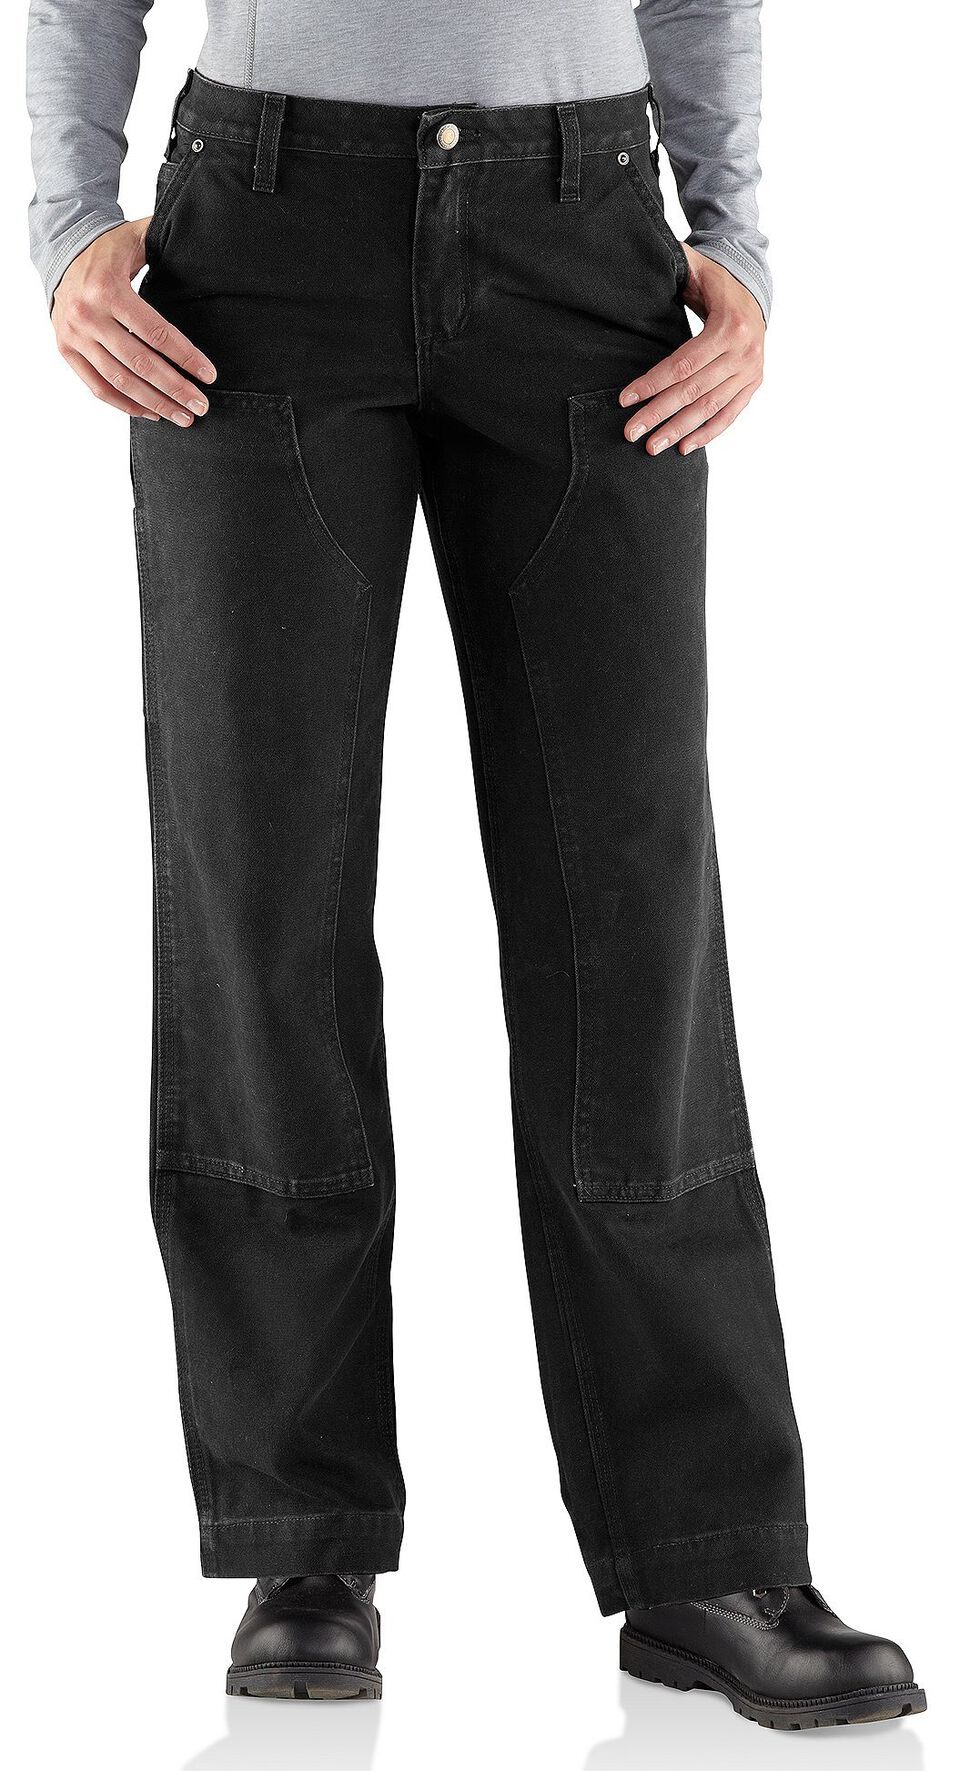 Carhartt Women's Relaxed-Fit Canvas Kane Dungaree Pants, Black, hi-res